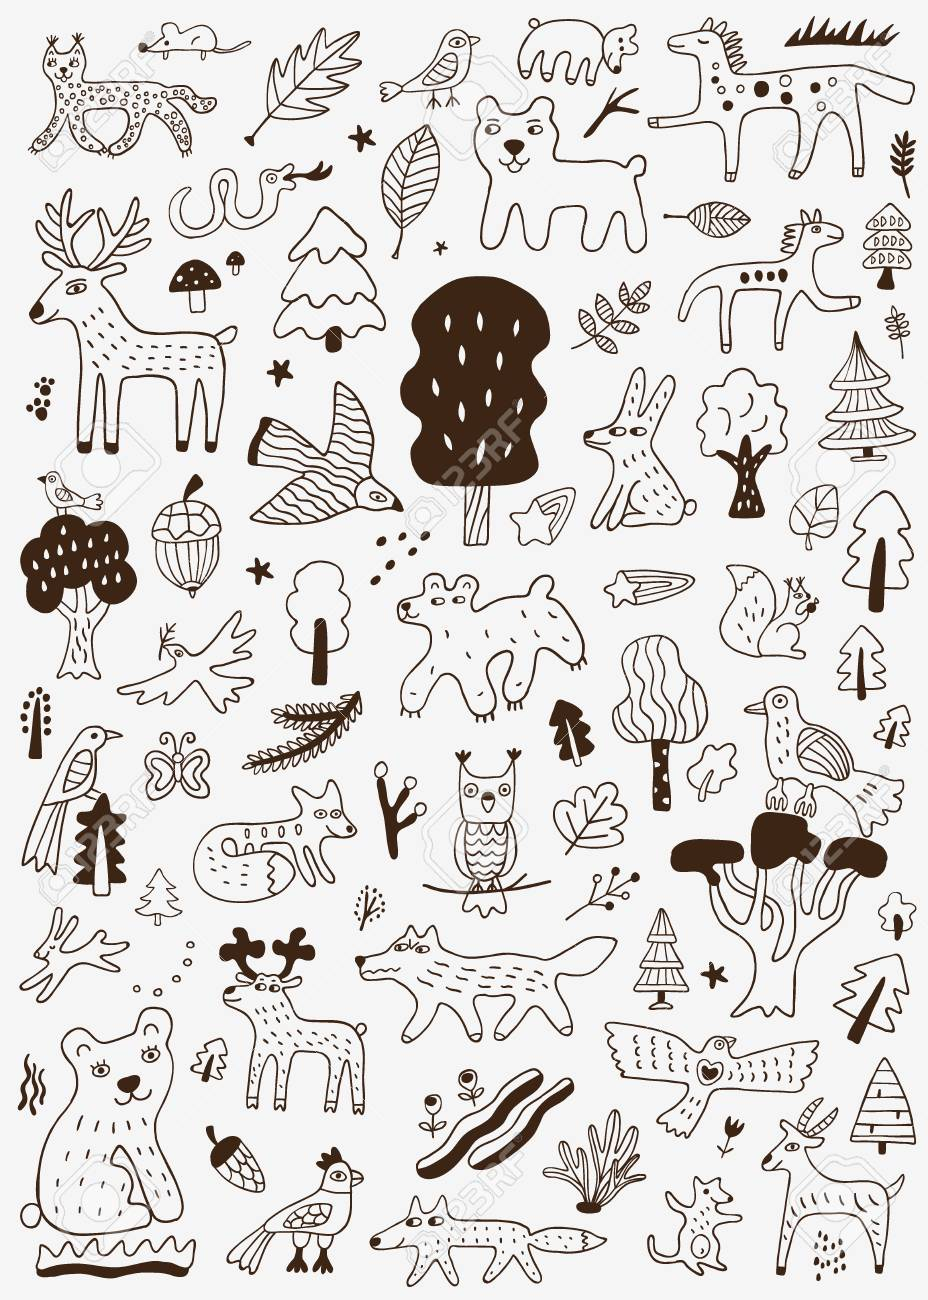 Forest animals nature symbols doodle set pencil drawings stock vector 110276646